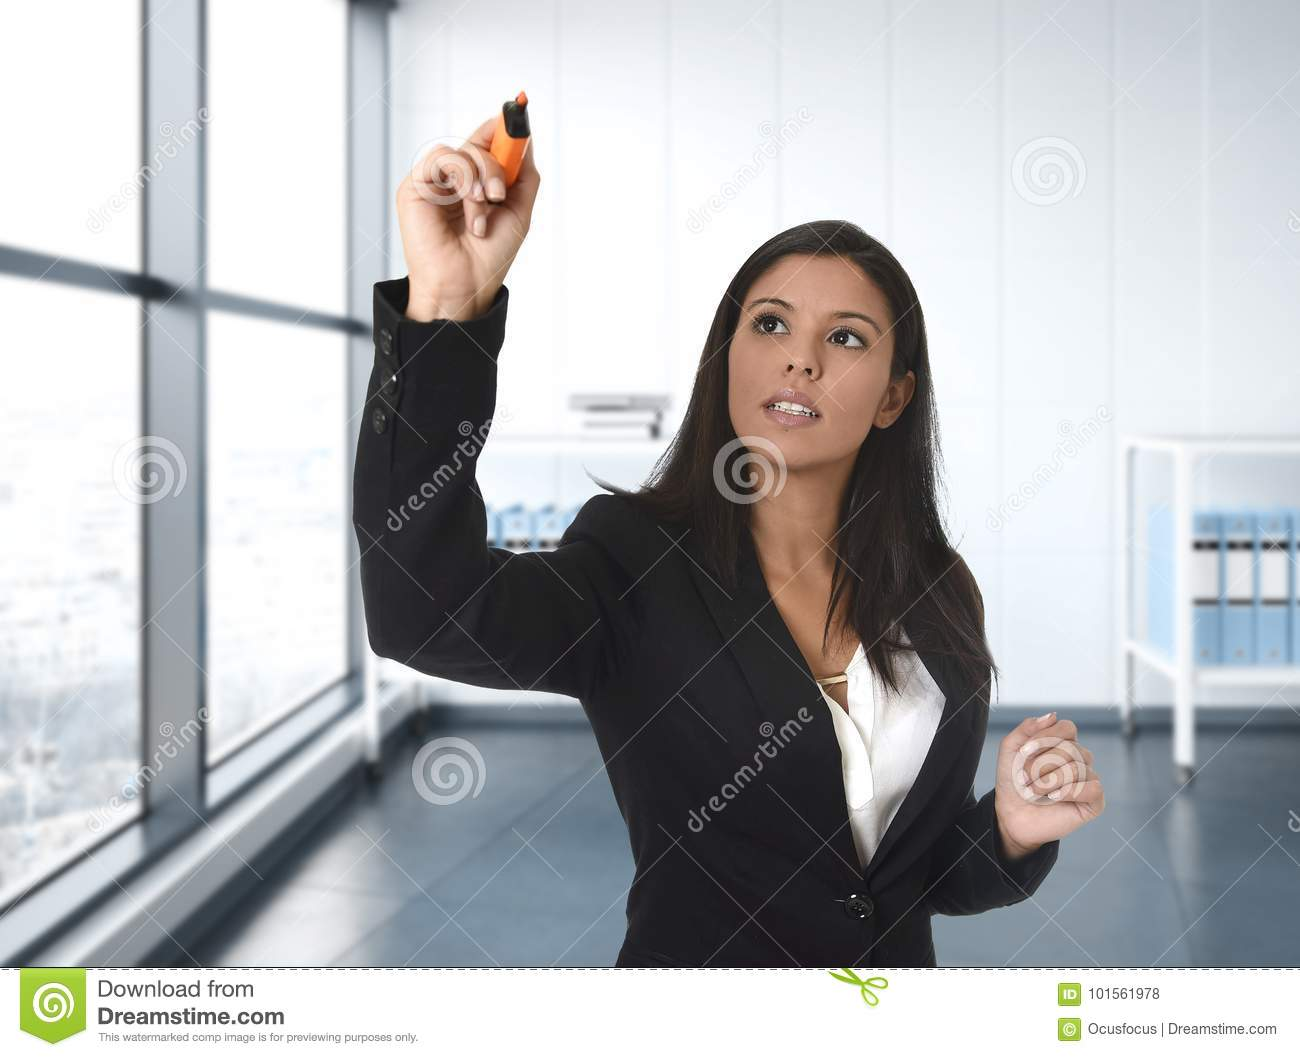 Latin business woman in formal suit writing with marker on invisible virtual screen or board at modern office